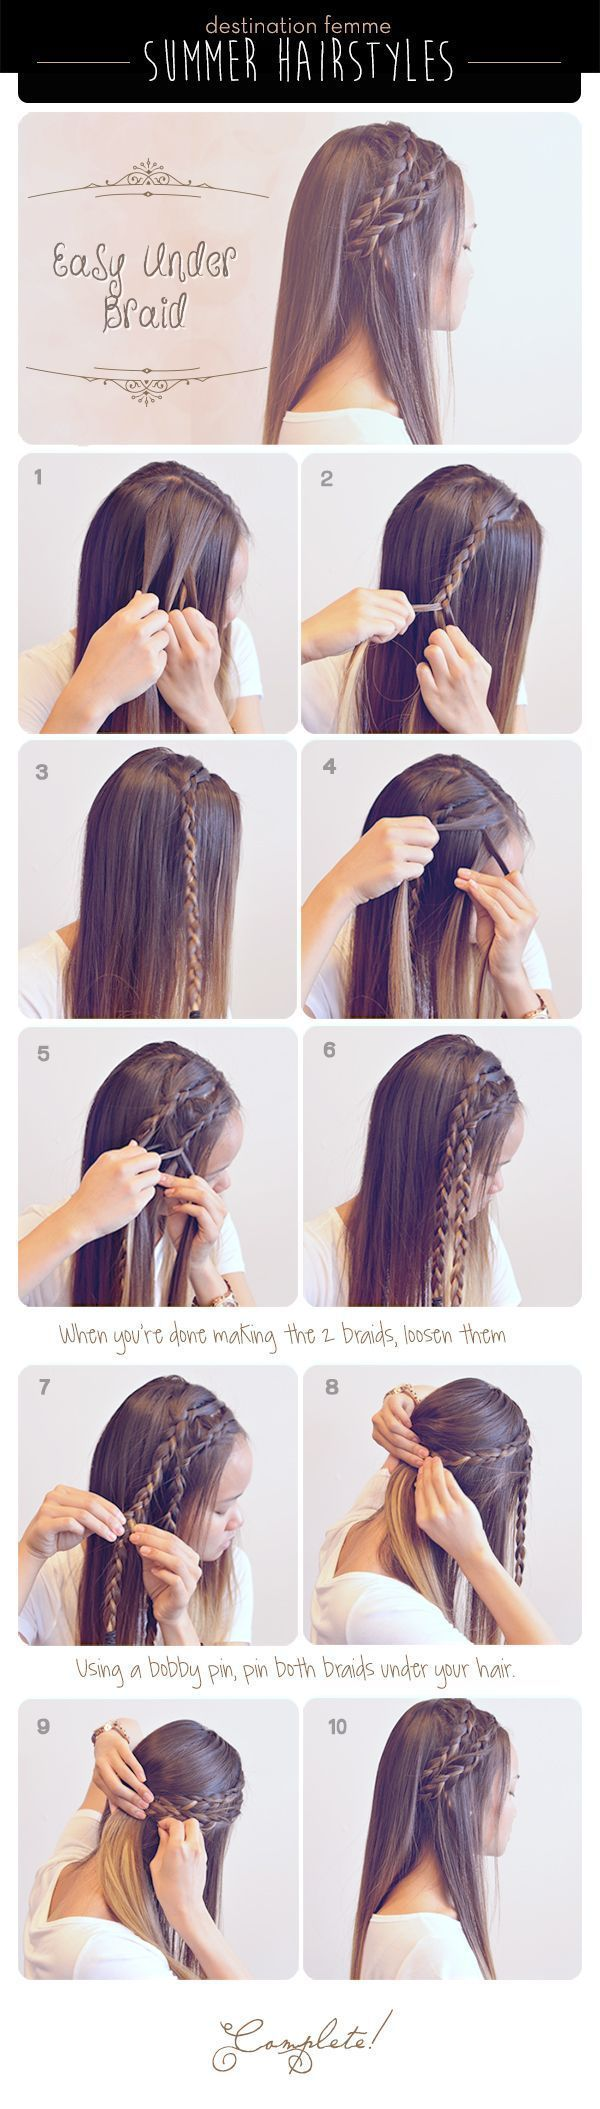 Summer Braid Hairstyle For Summer summer long hair braids diy hair hair tutorial hairstyles hair tutorials easy hairstyles - http://1pic4u.com/2015/09/07/summer-braid-hairstyle-for-summer-summer-long-hair-braids-diy-hair-hair-tutorial-hairstyles-hair-tutorials-easy-hairstyles/